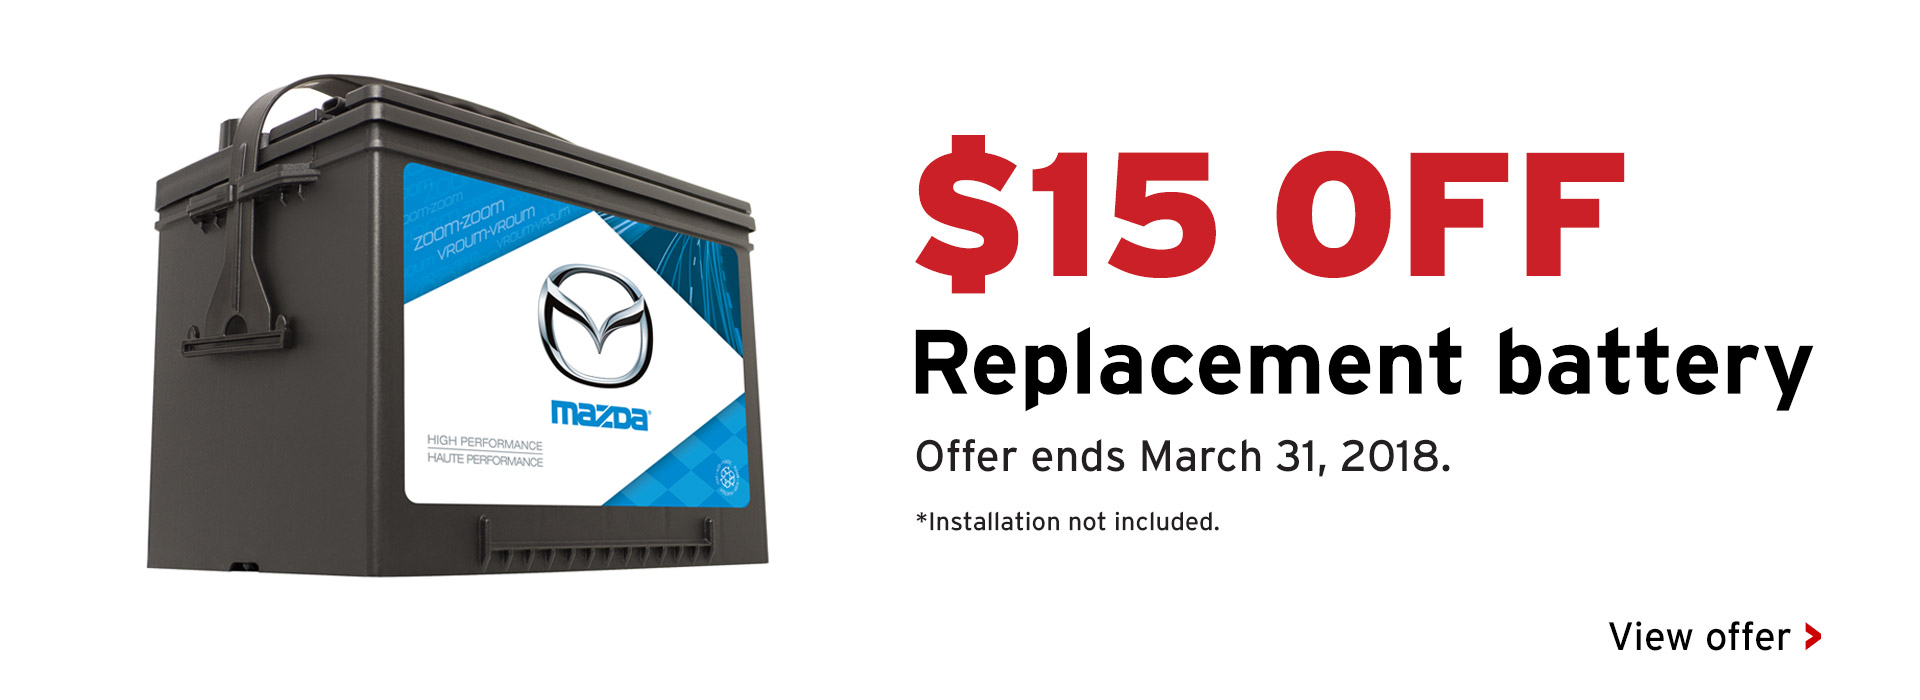 15% Off replacement battery